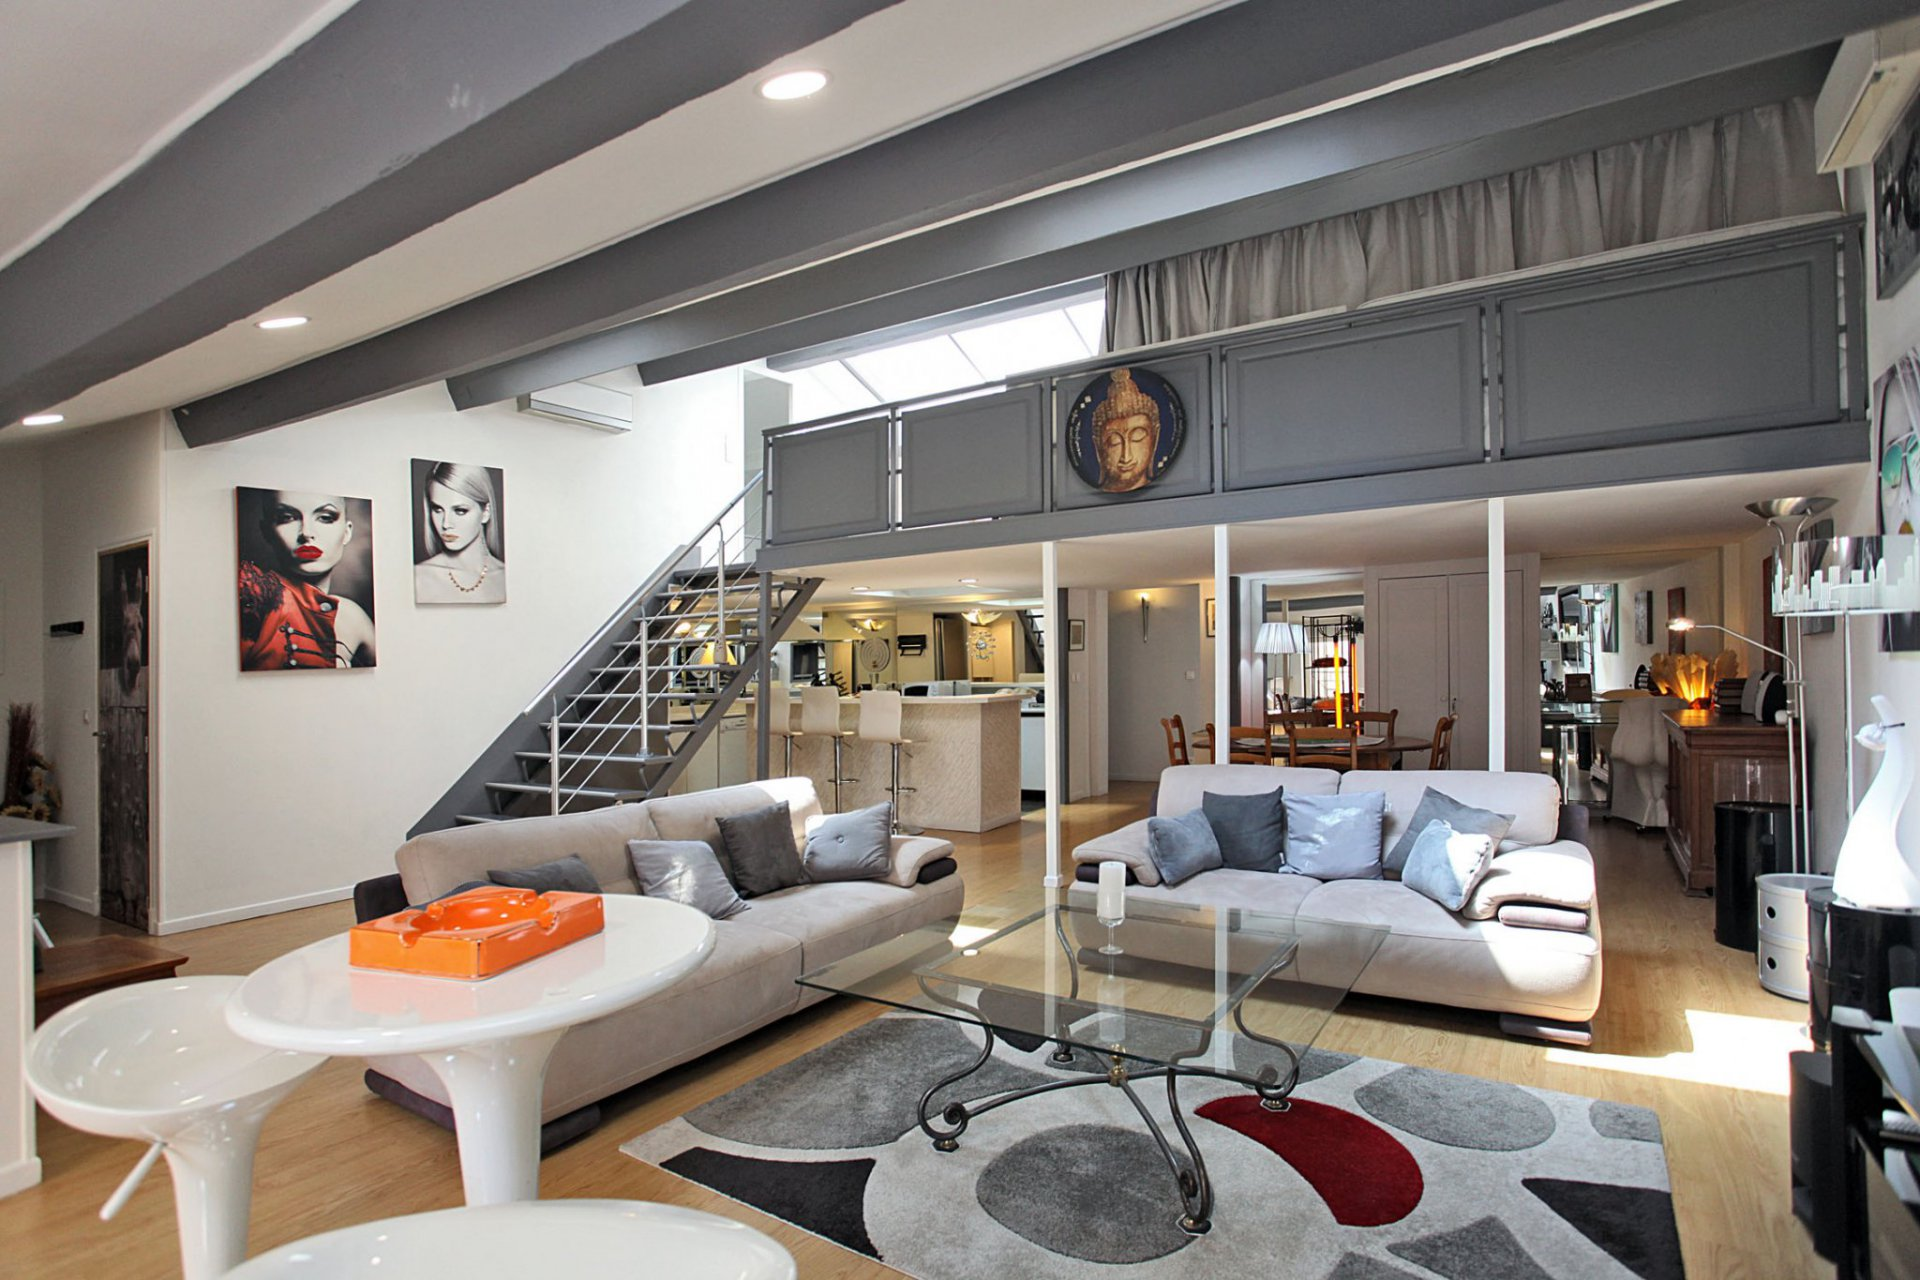 Duplex loft appartement in Cannes aan de Côte d'Azur